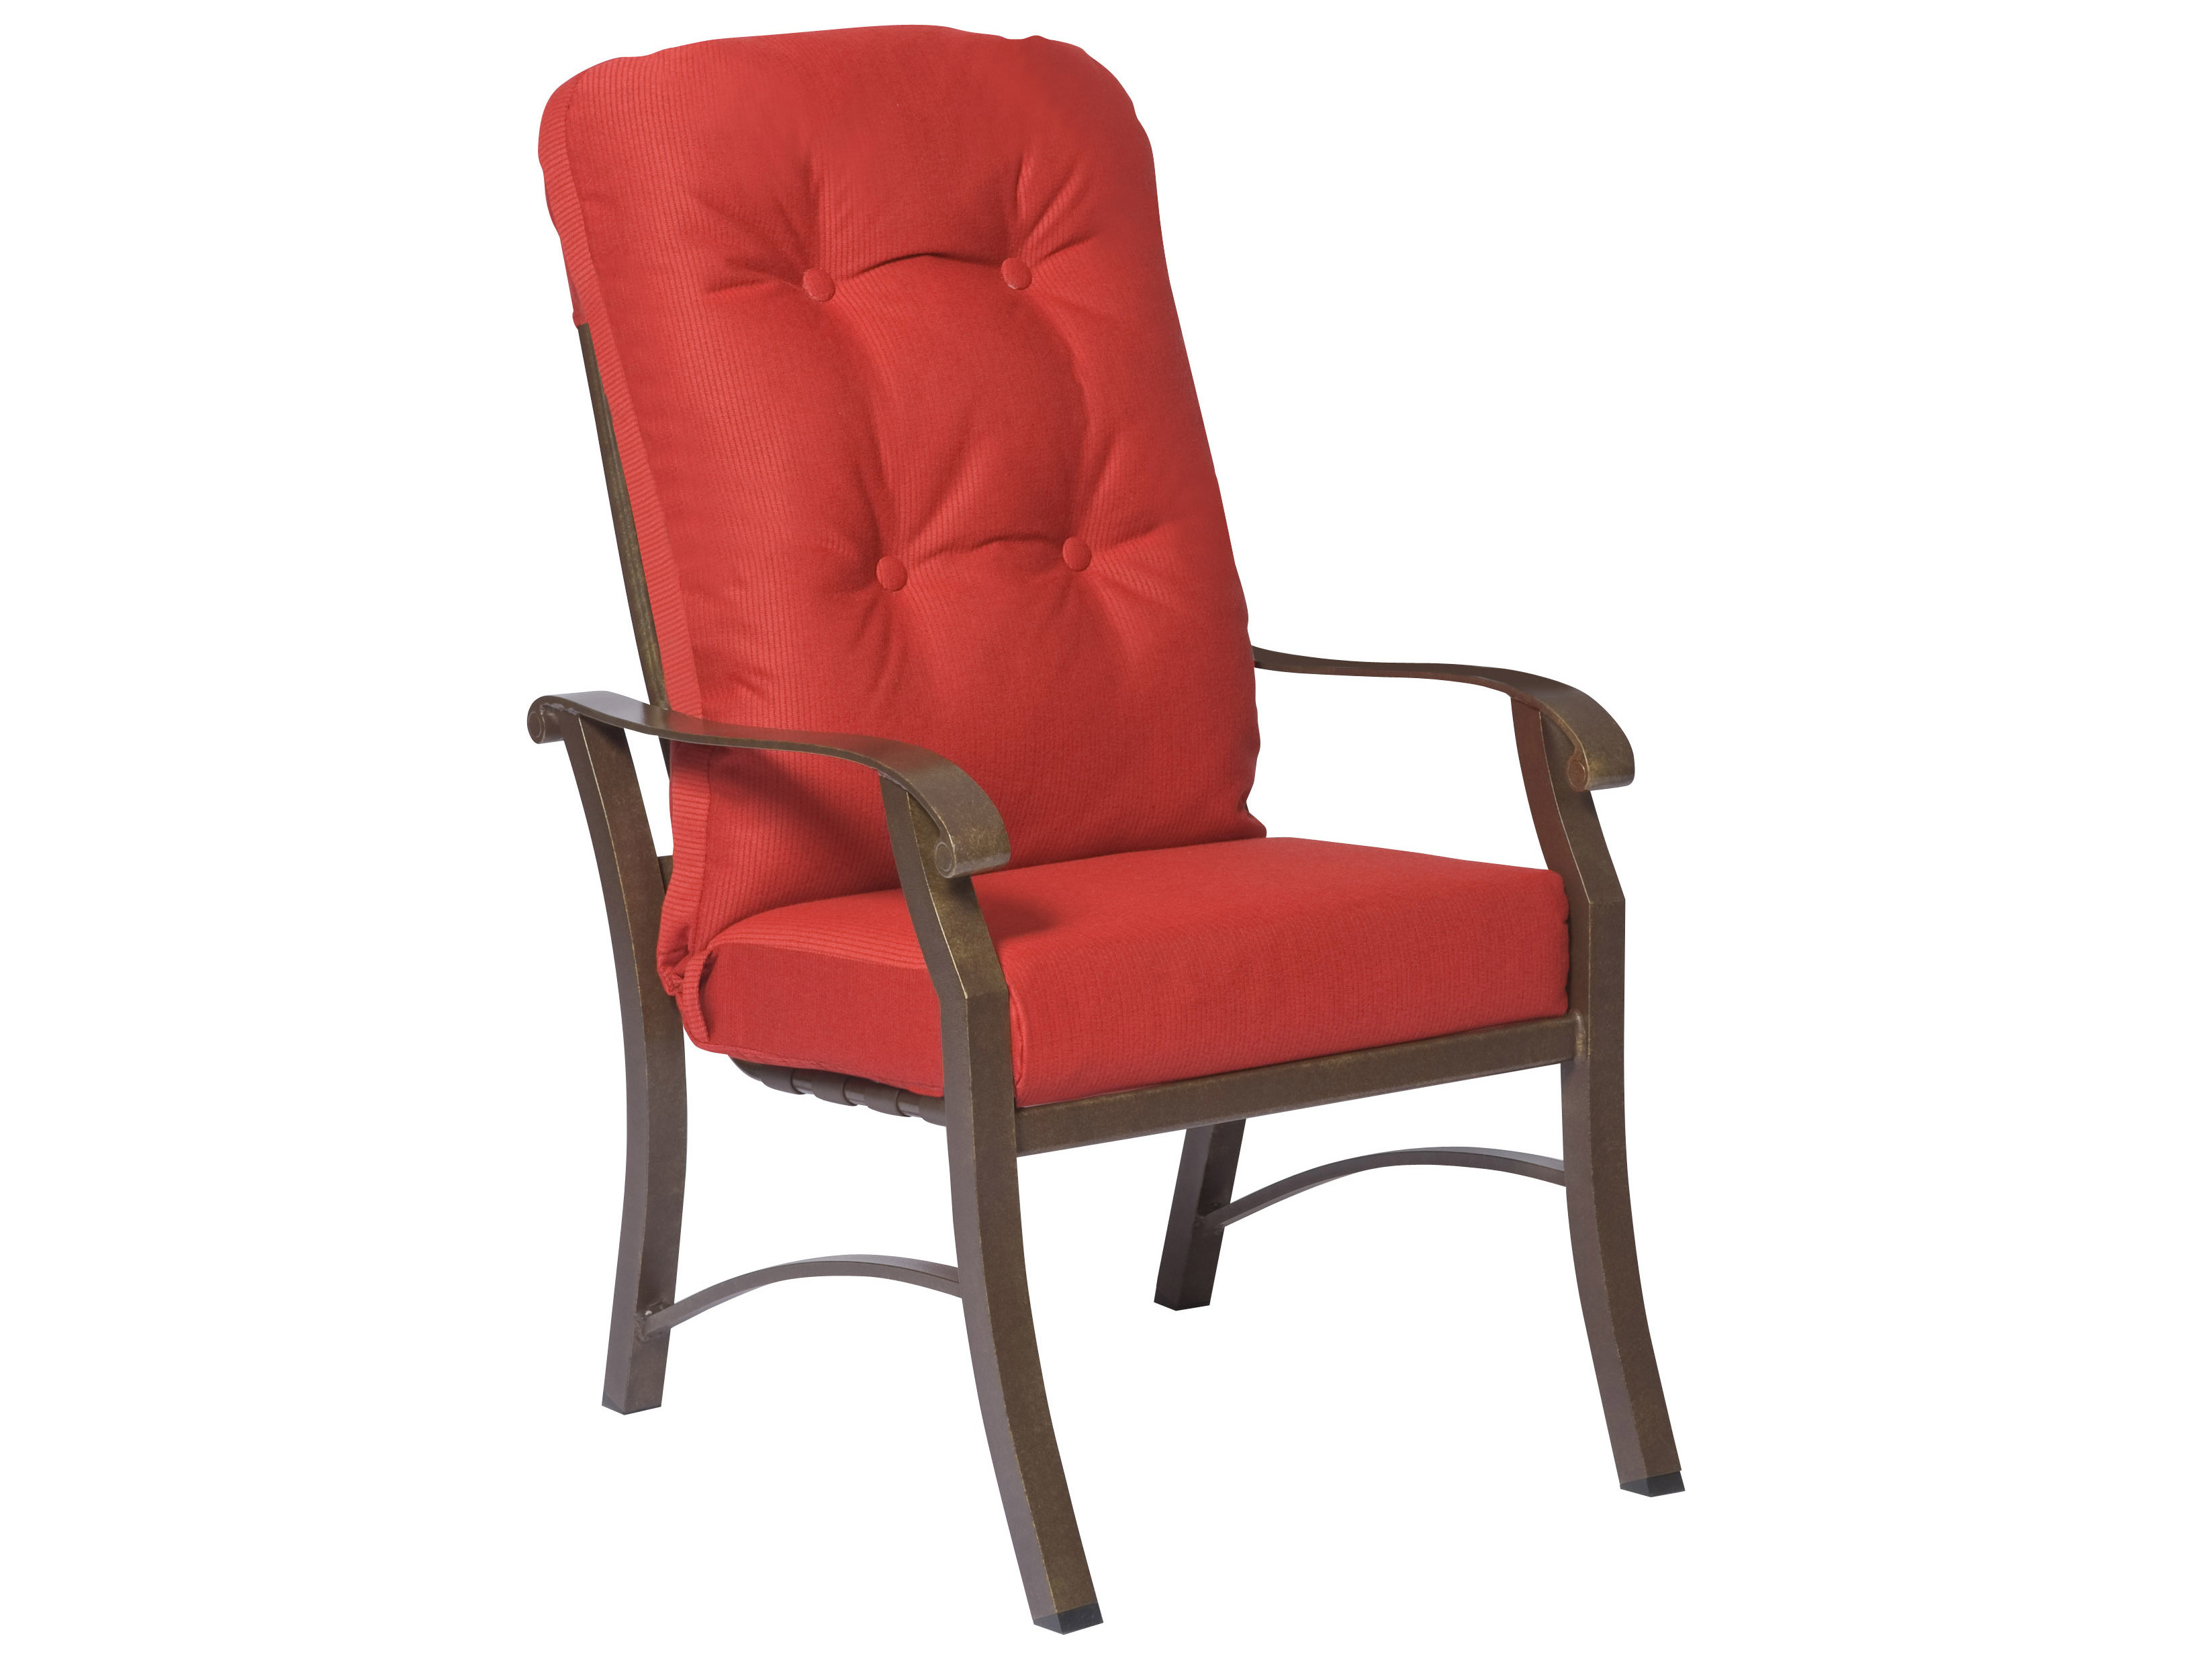 Woodard Cortland High Back Dining Arm Chair Replacement